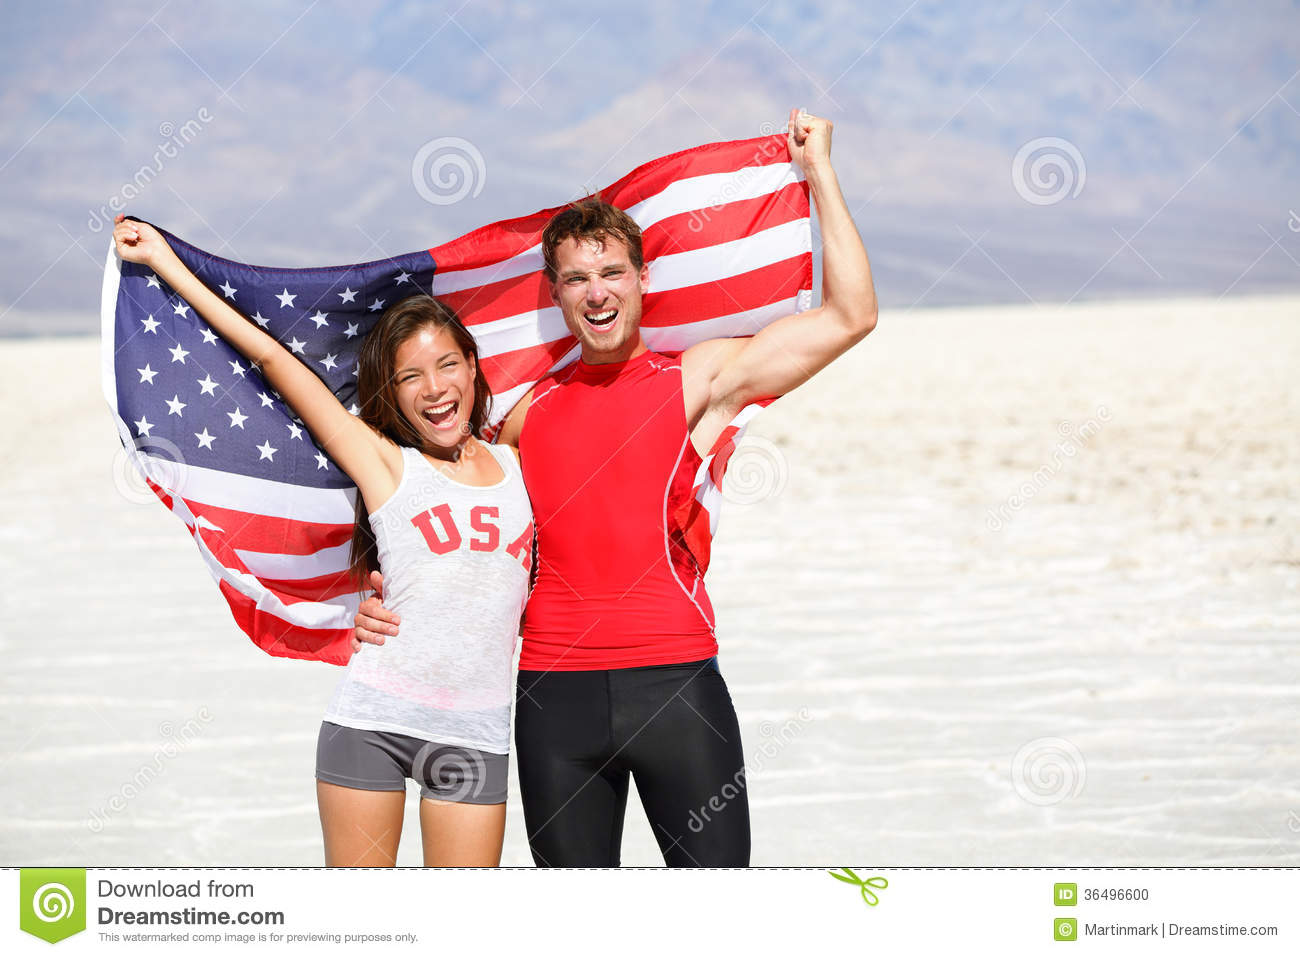 USA Athletes People Holding American Flag Cheering Stock Photo - Image ...